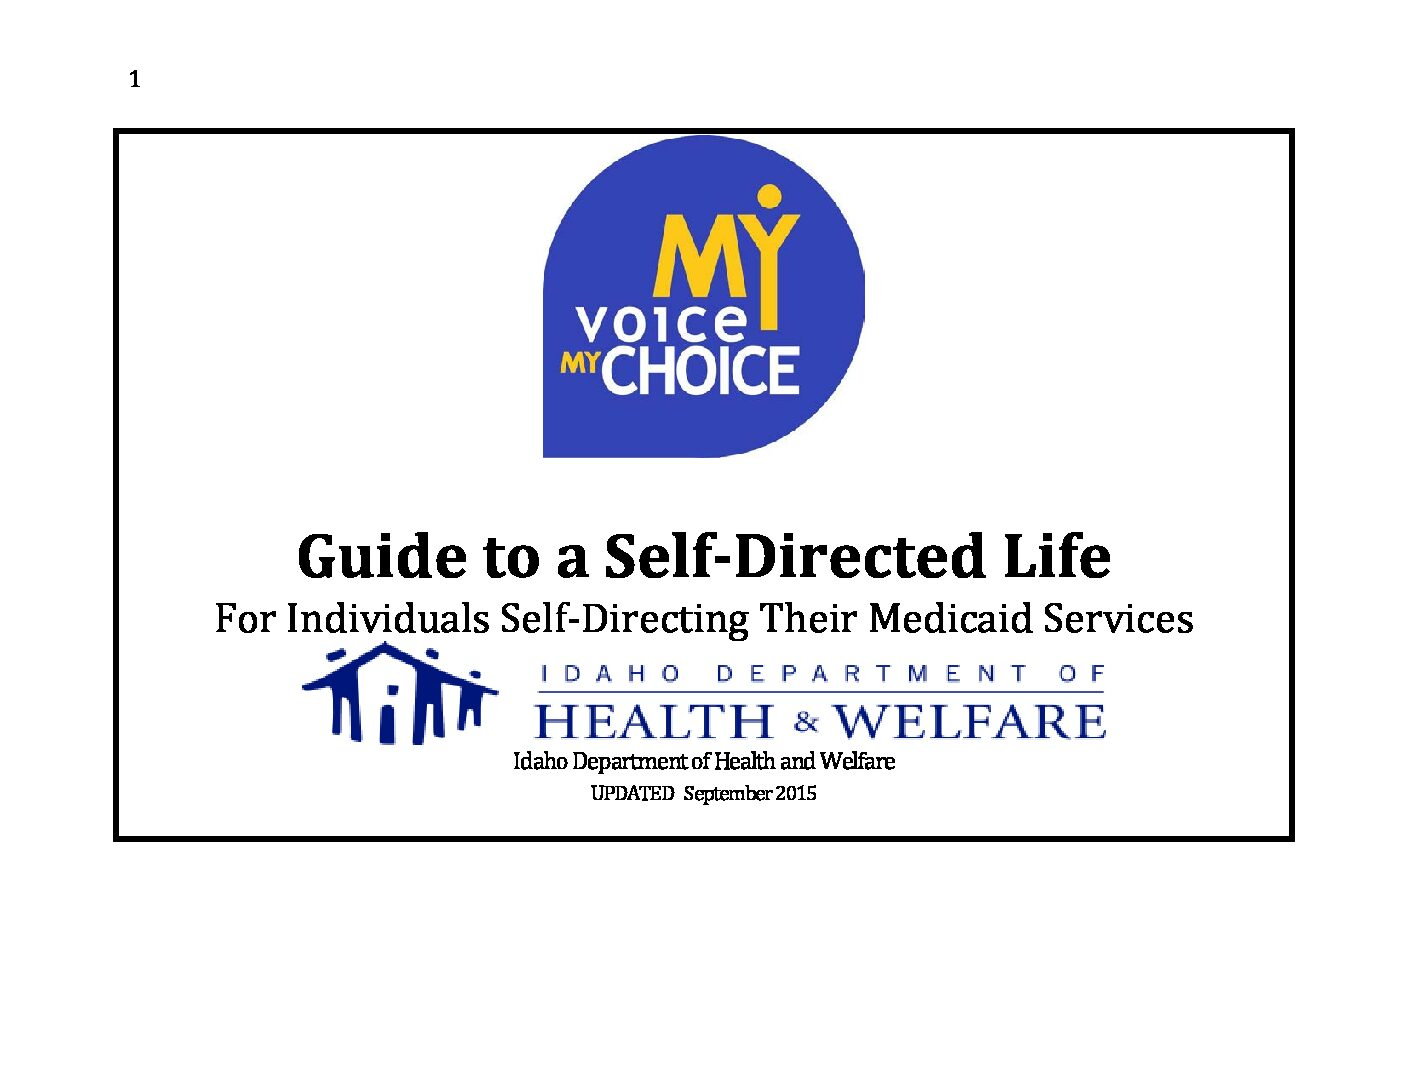 My Voice, My Choice: Idaho Department of Health and Welfare Guide to a Self-Directed Life For Individuals Self-Directing Their Medicaid Services